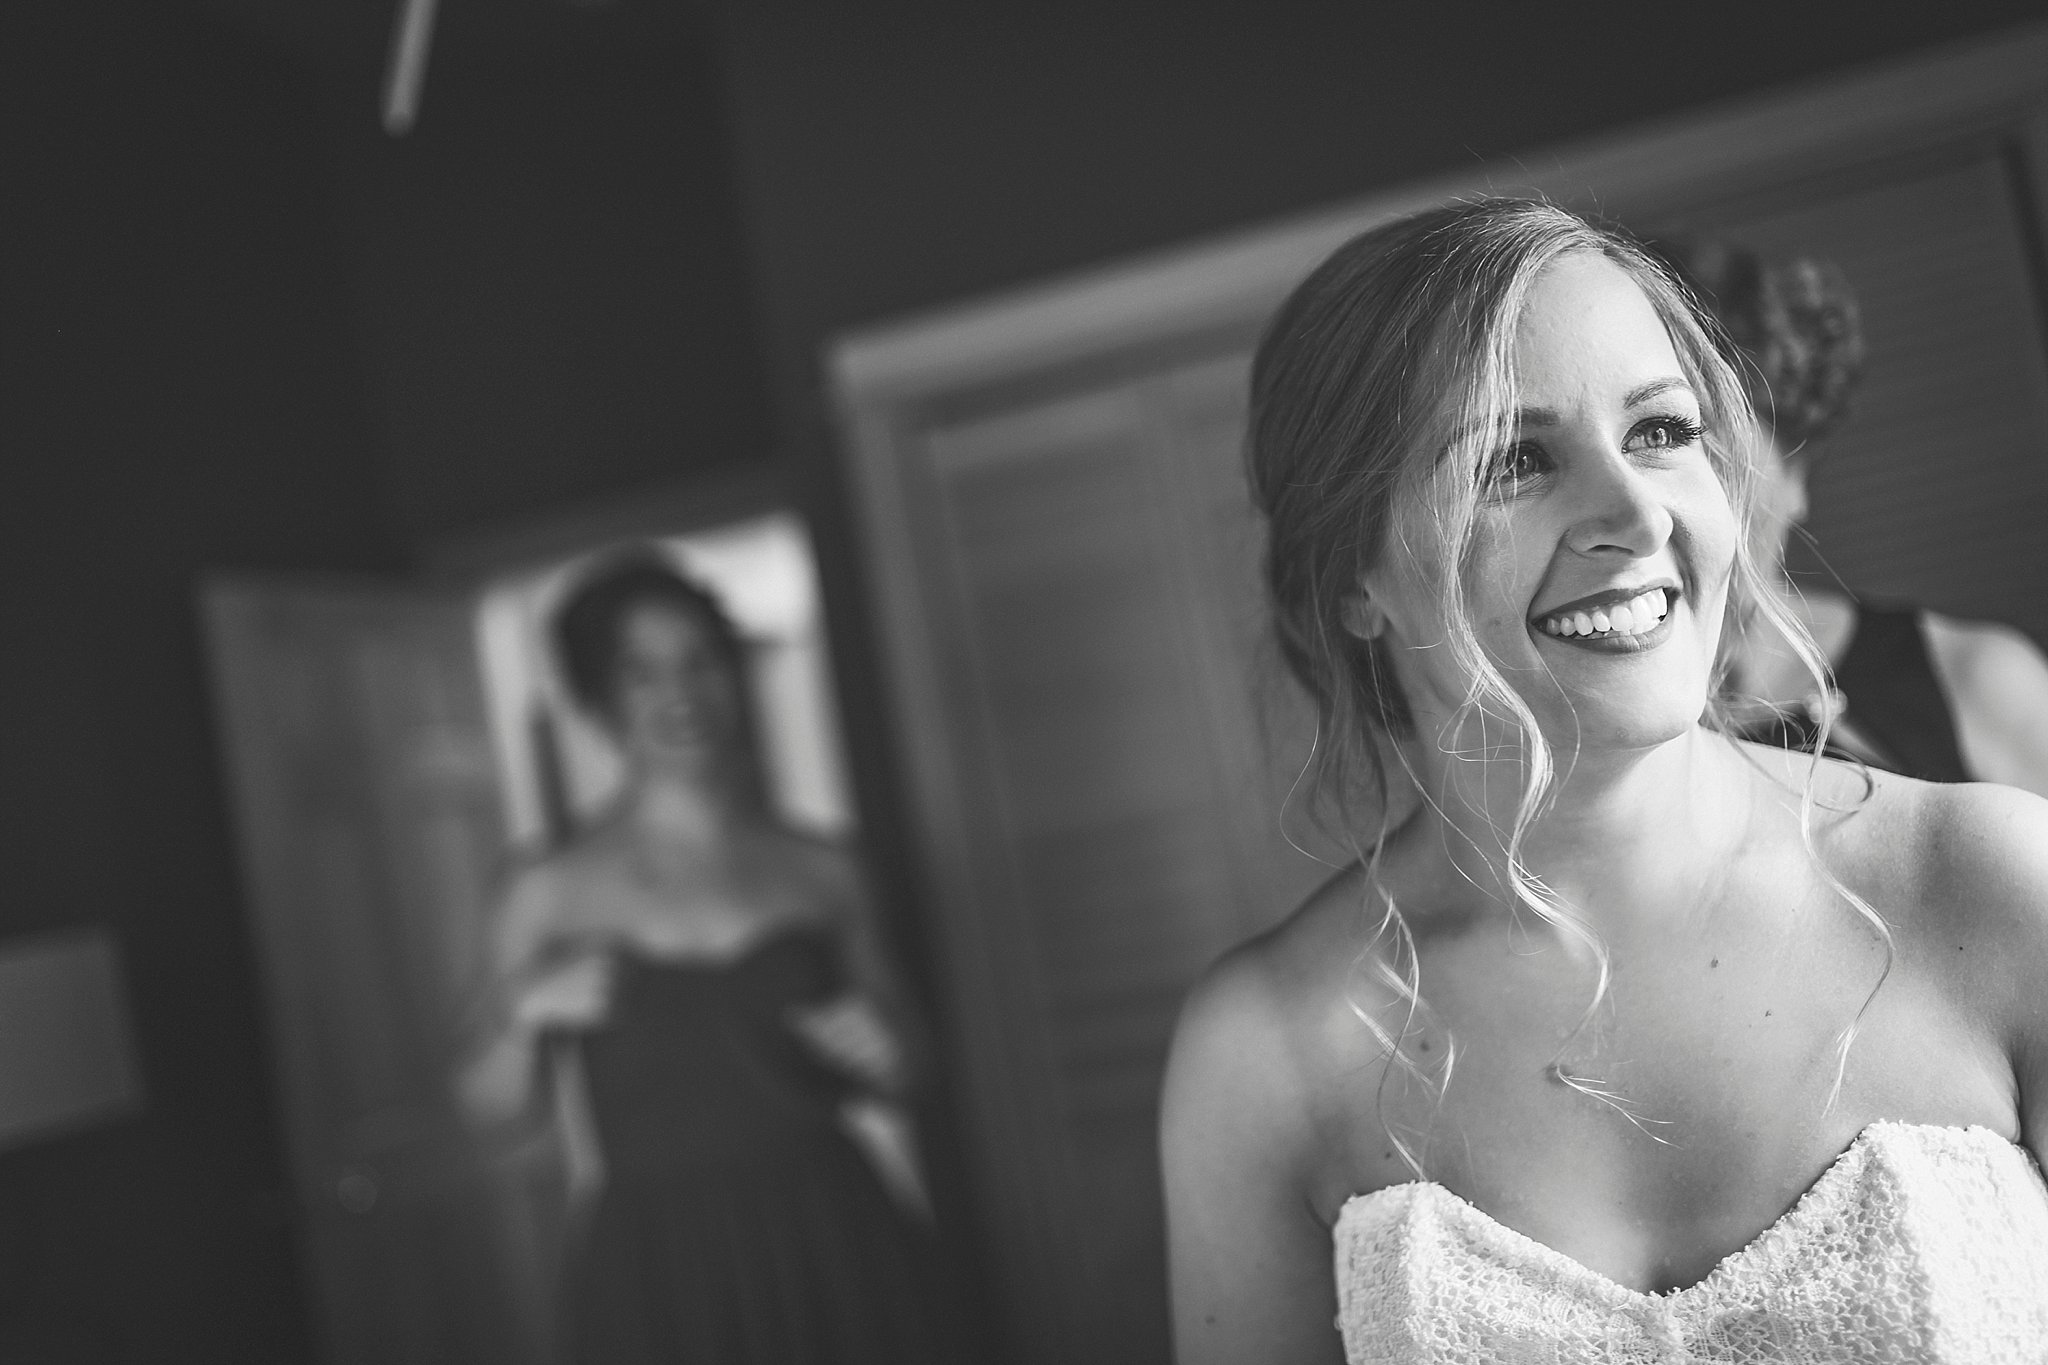 A bride prepares for her wedding day in St. John's, Newfoundland